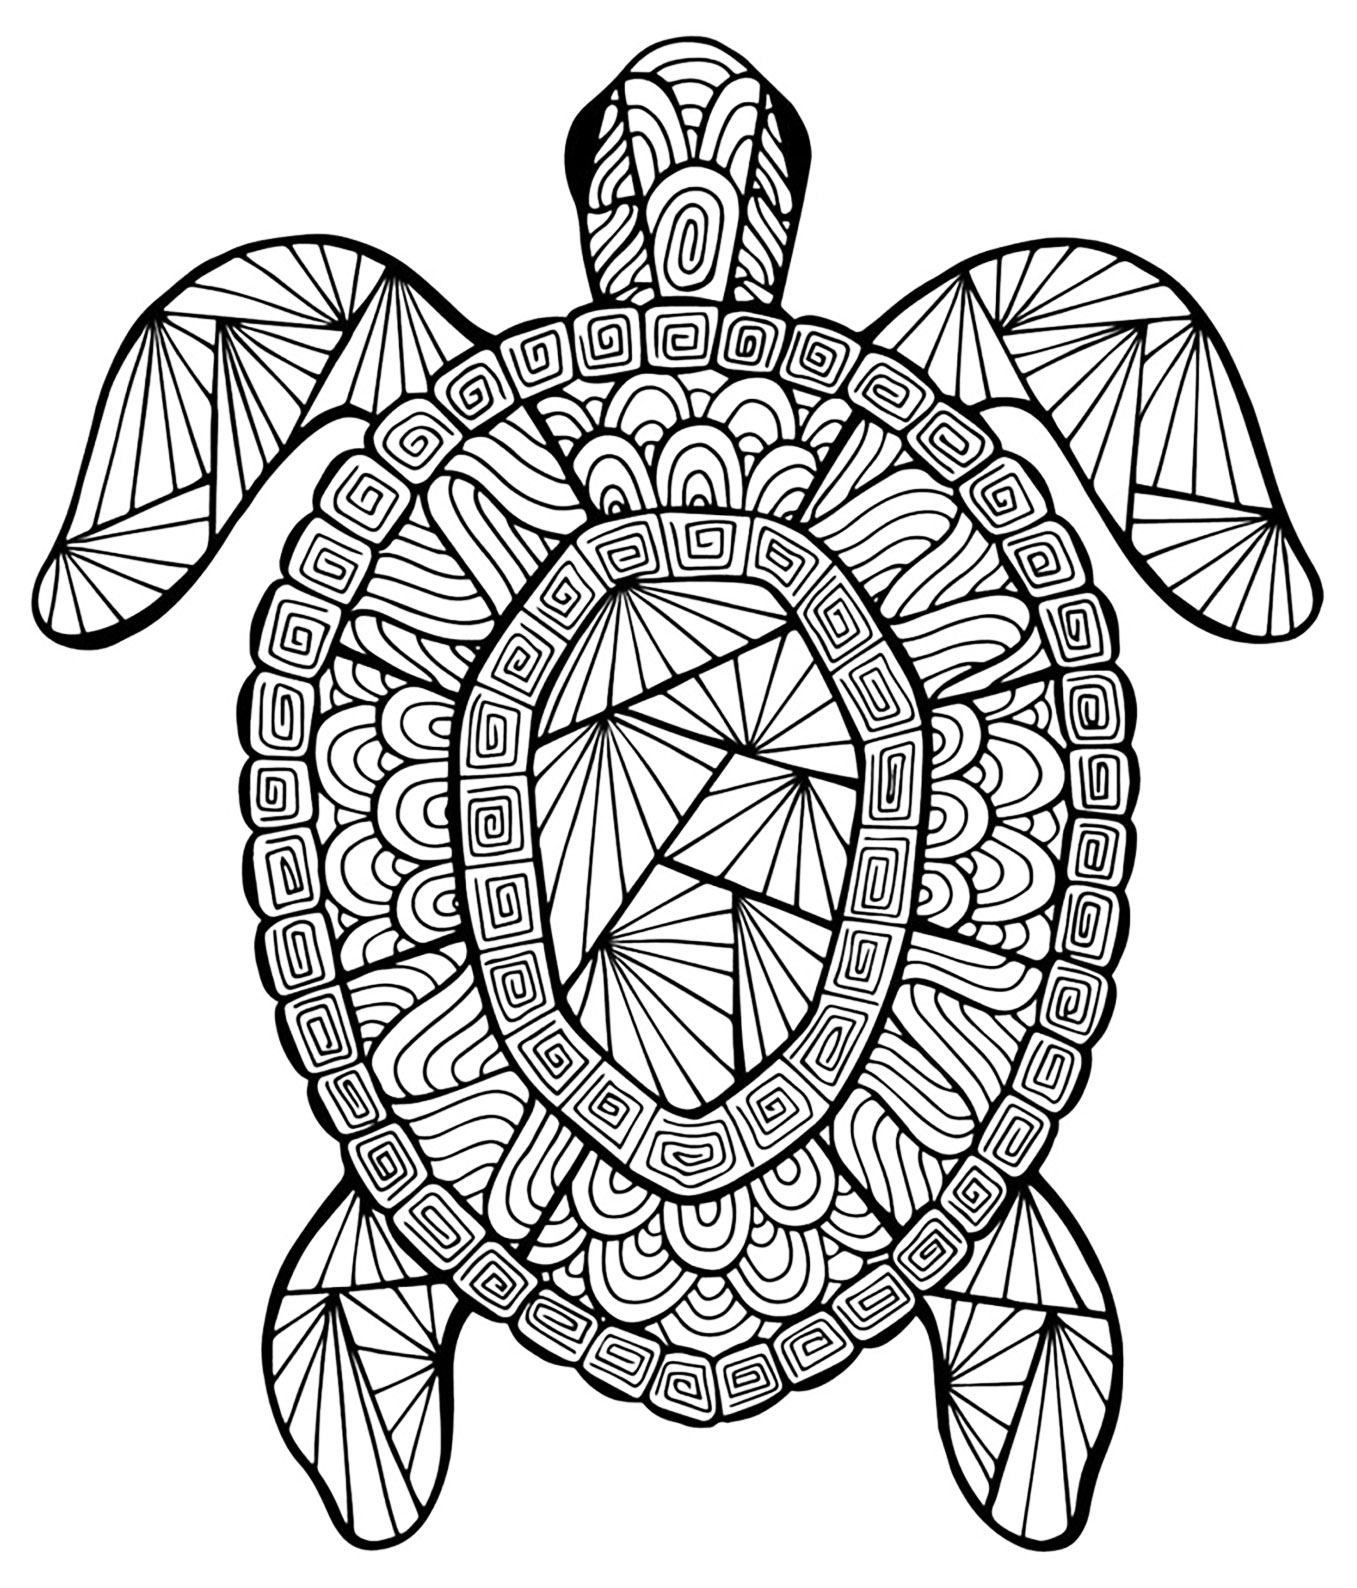 Coloriage Mandala Animaux Tortue.Tortue Coloriages D Animaux 100 Mandalas Zen Anti Stress